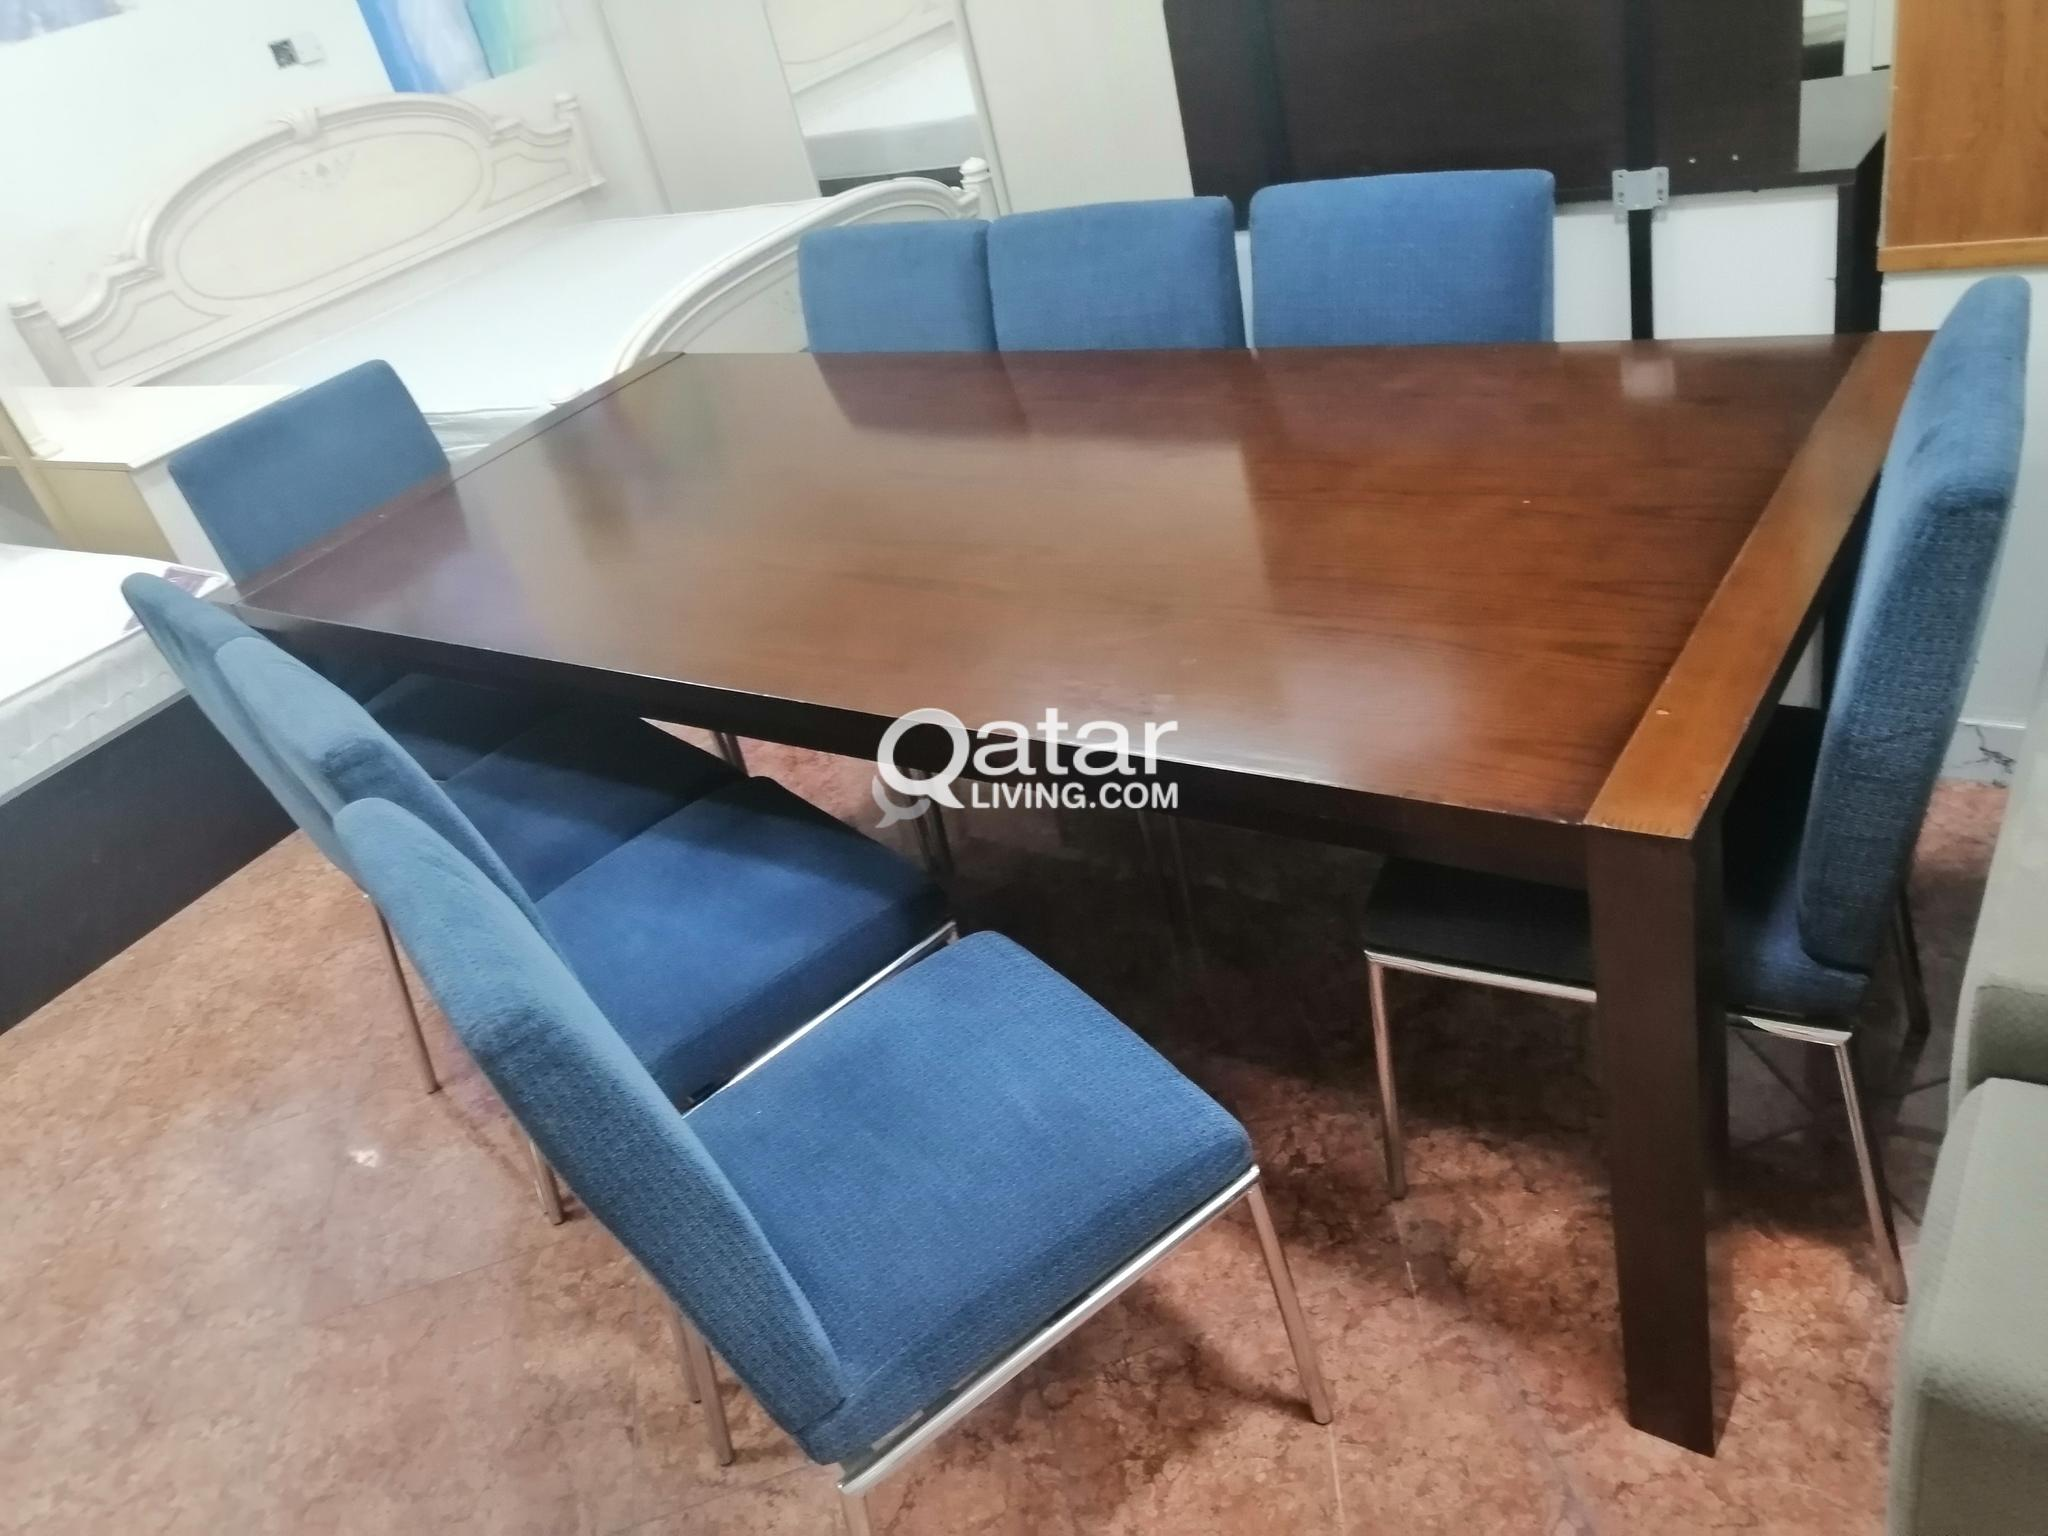 Dining table for selle 55515633